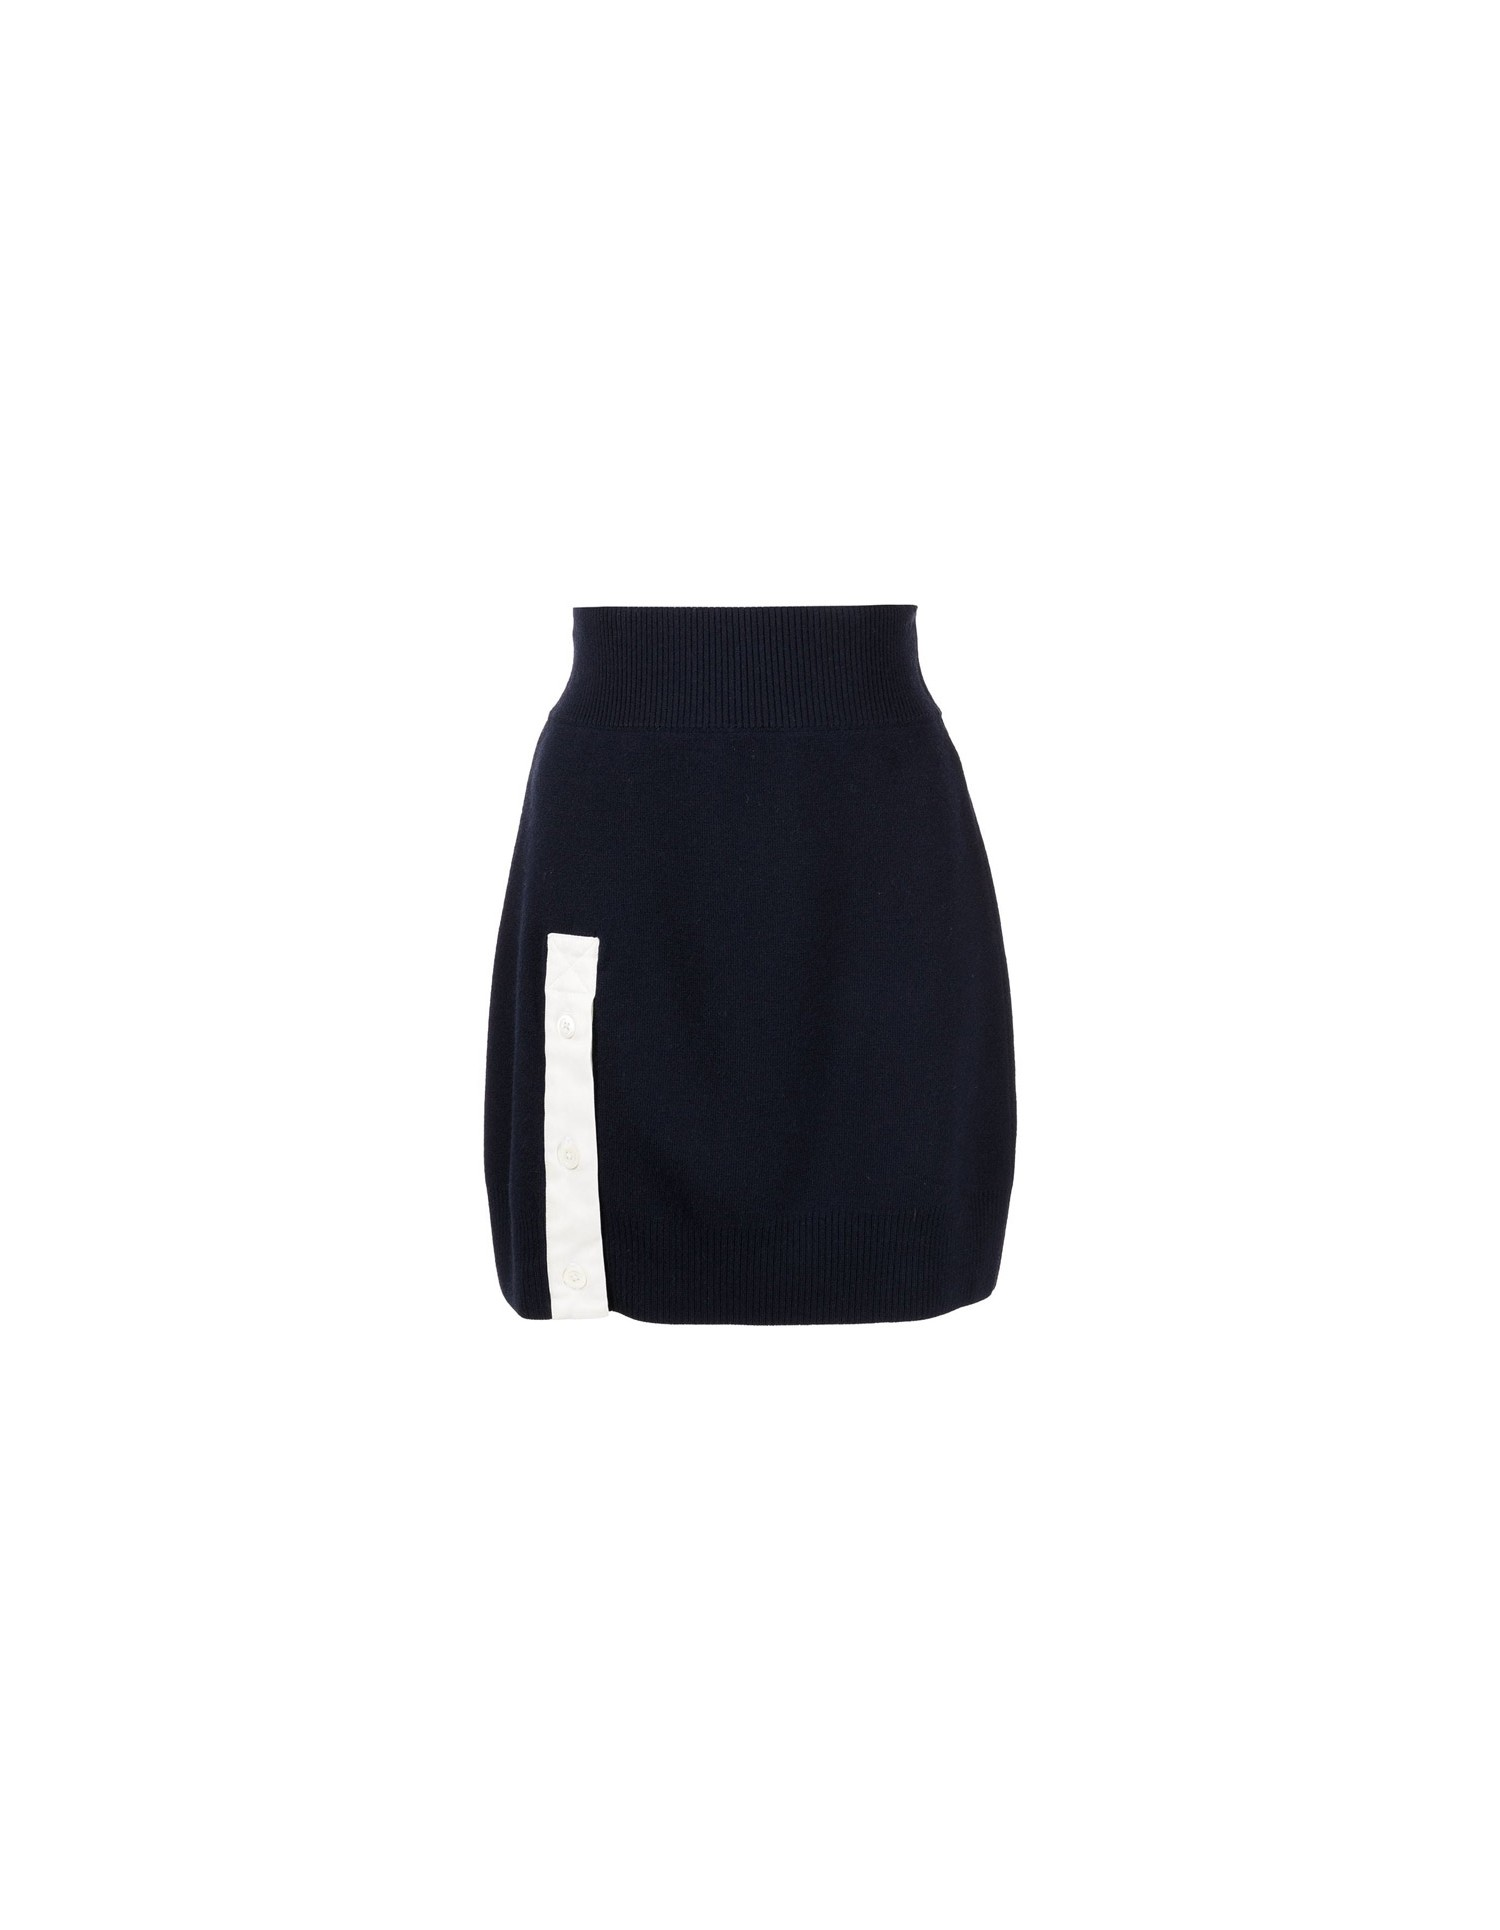 MONSE Rugby Knit Mini Skirt in Midnight and Ivory Flat Front